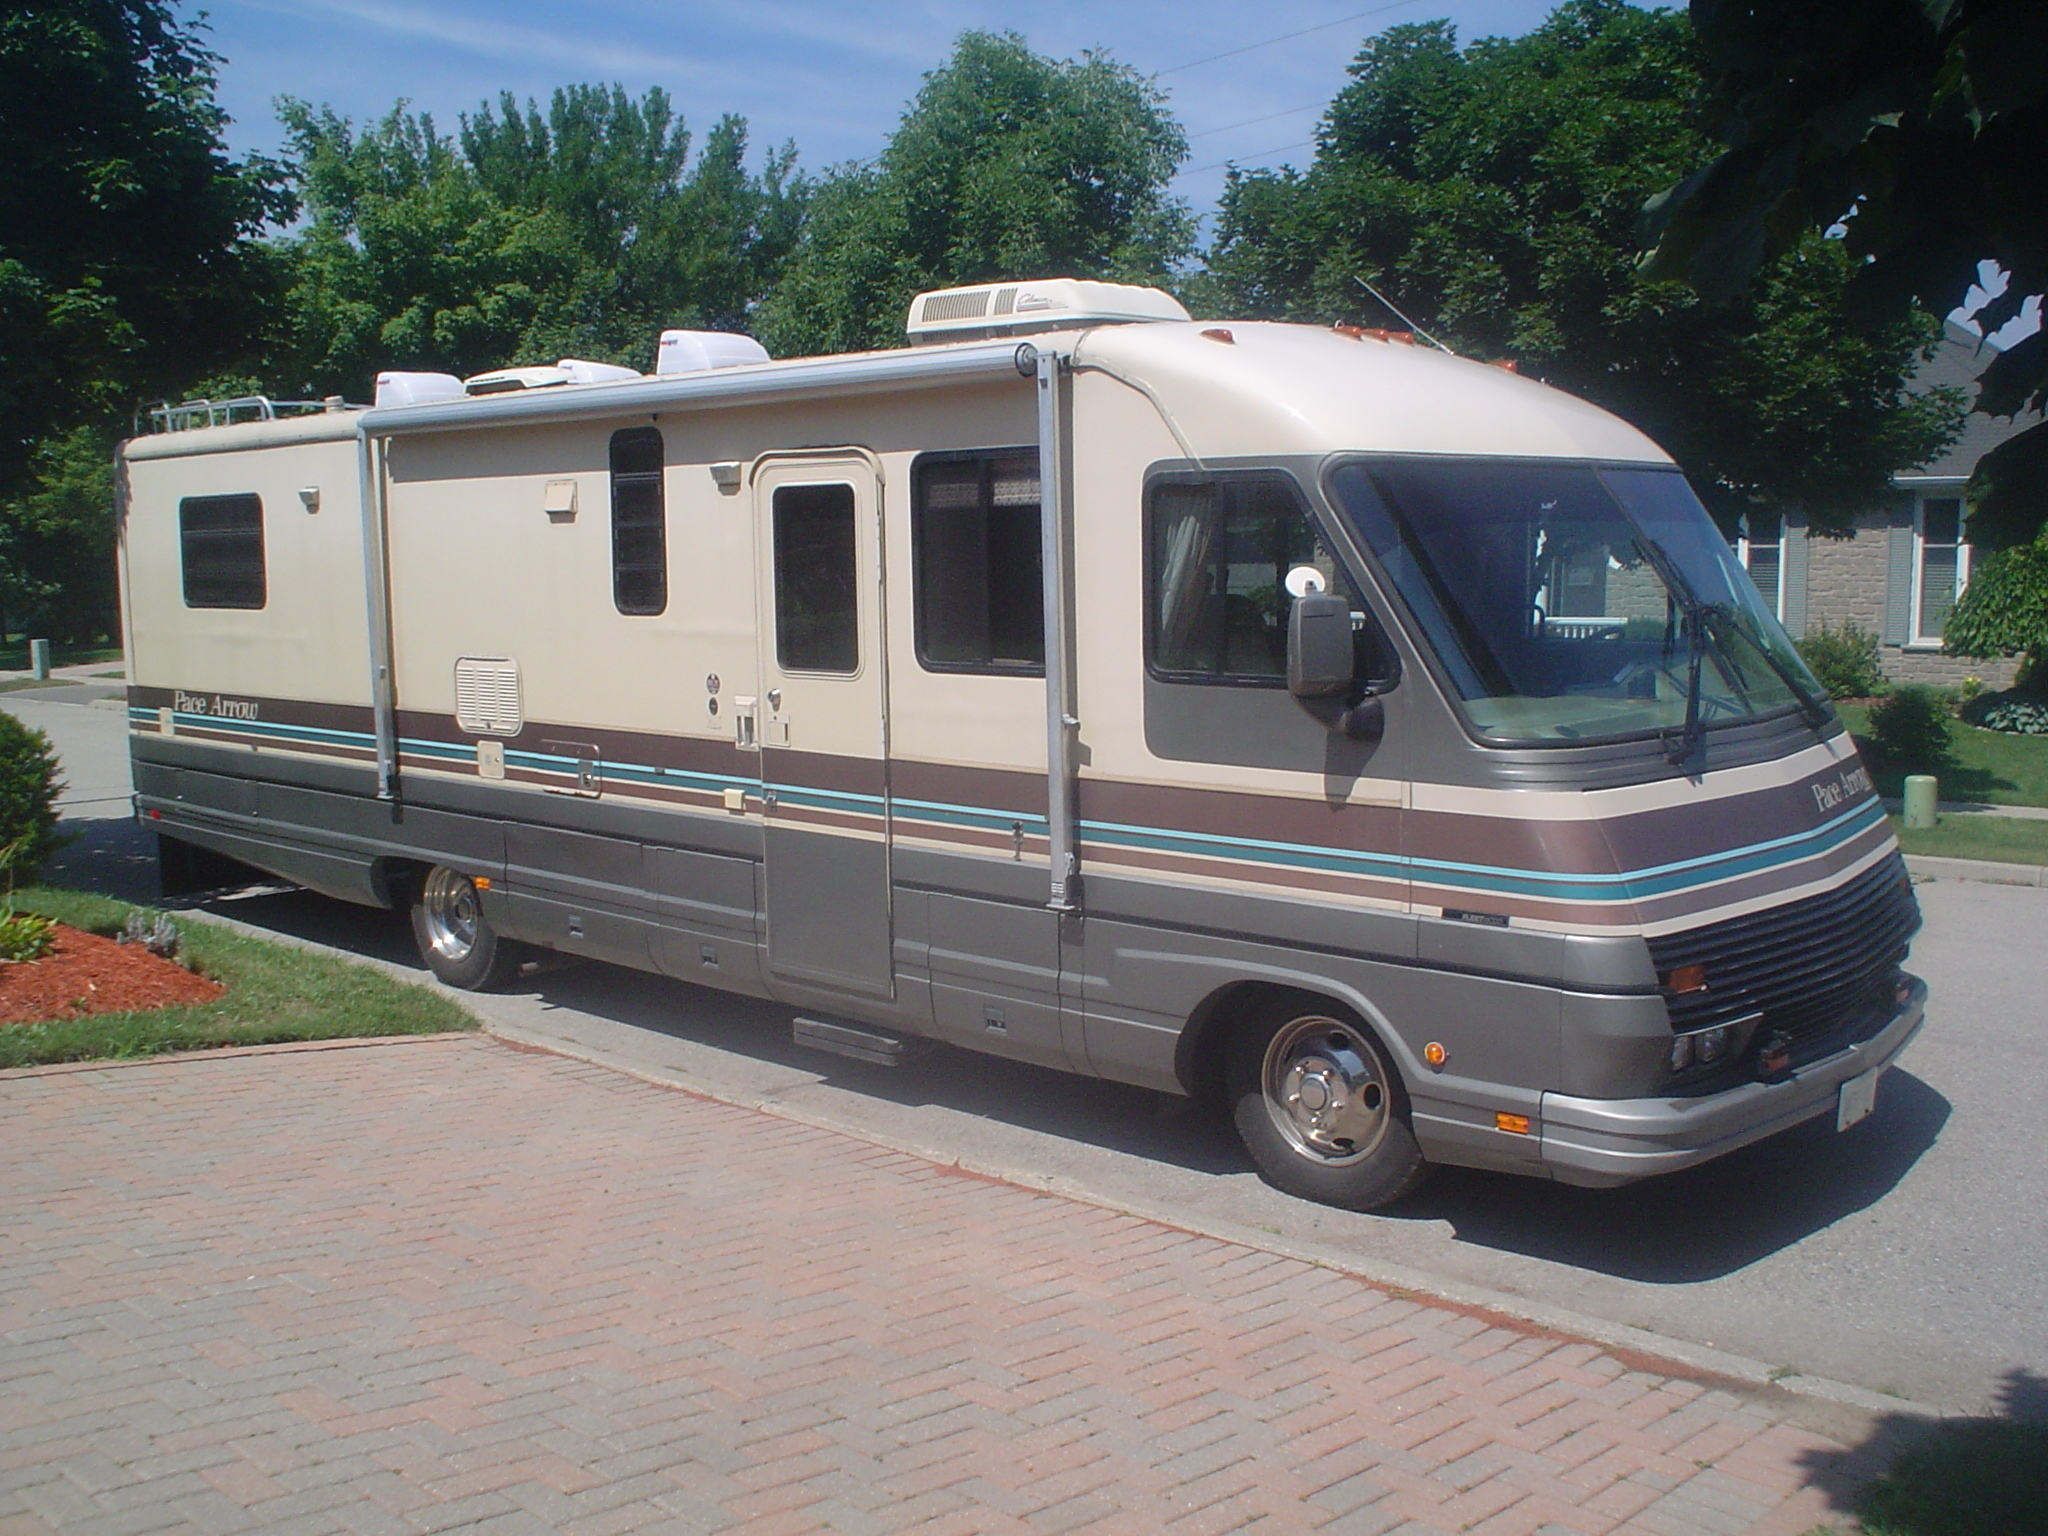 The RV, a vehicle that Americans do find acceptable to live in.